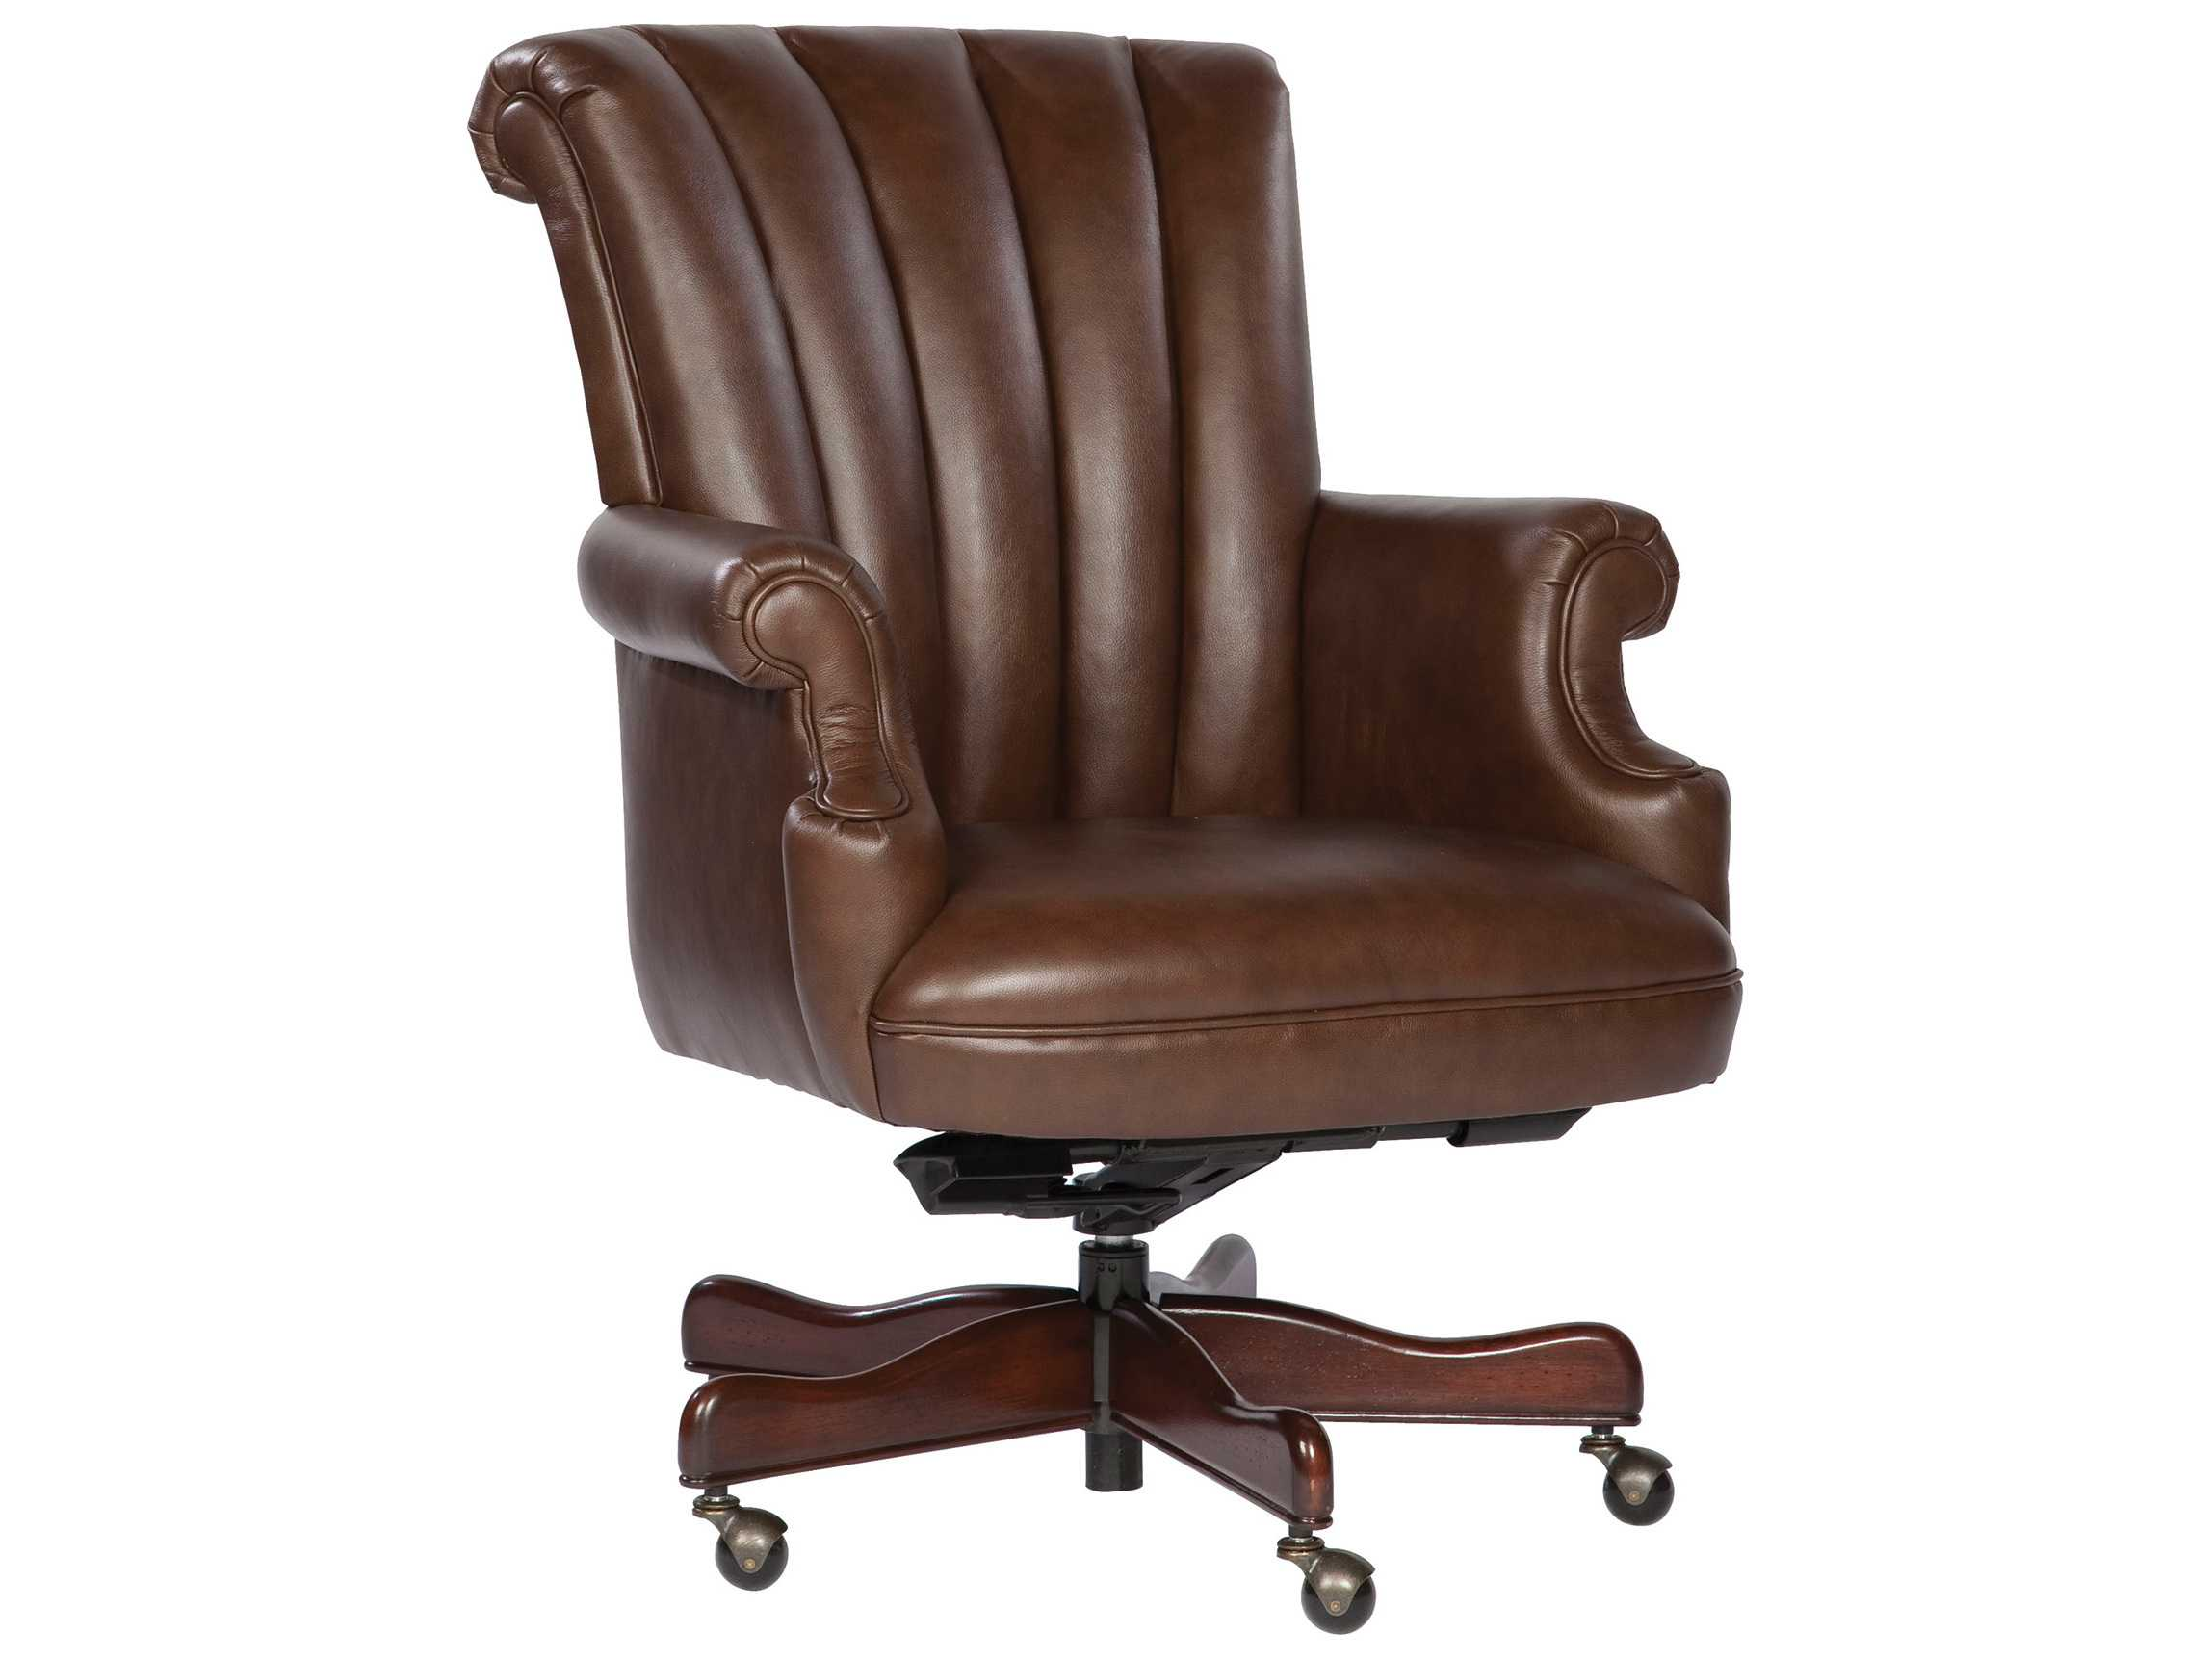 Executive Leather Chair Hekman Office Executive Ribbed Back Leather Chair In Coffee